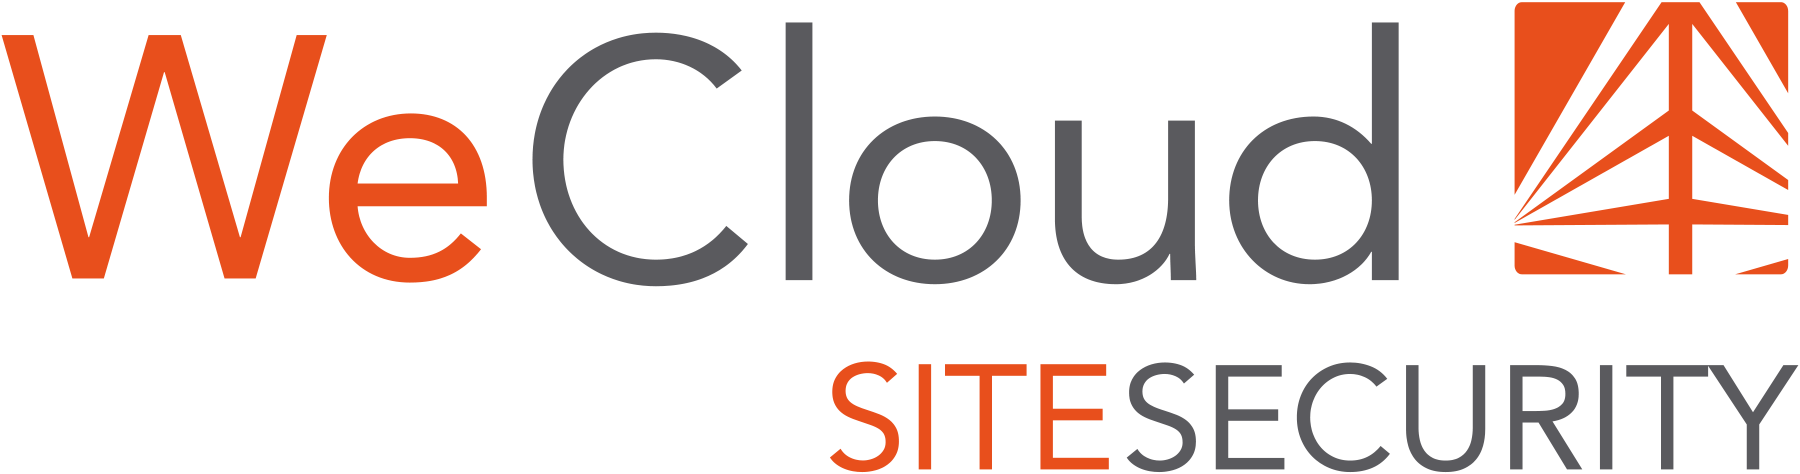 WeCloud-logo-SiteSecurity.png